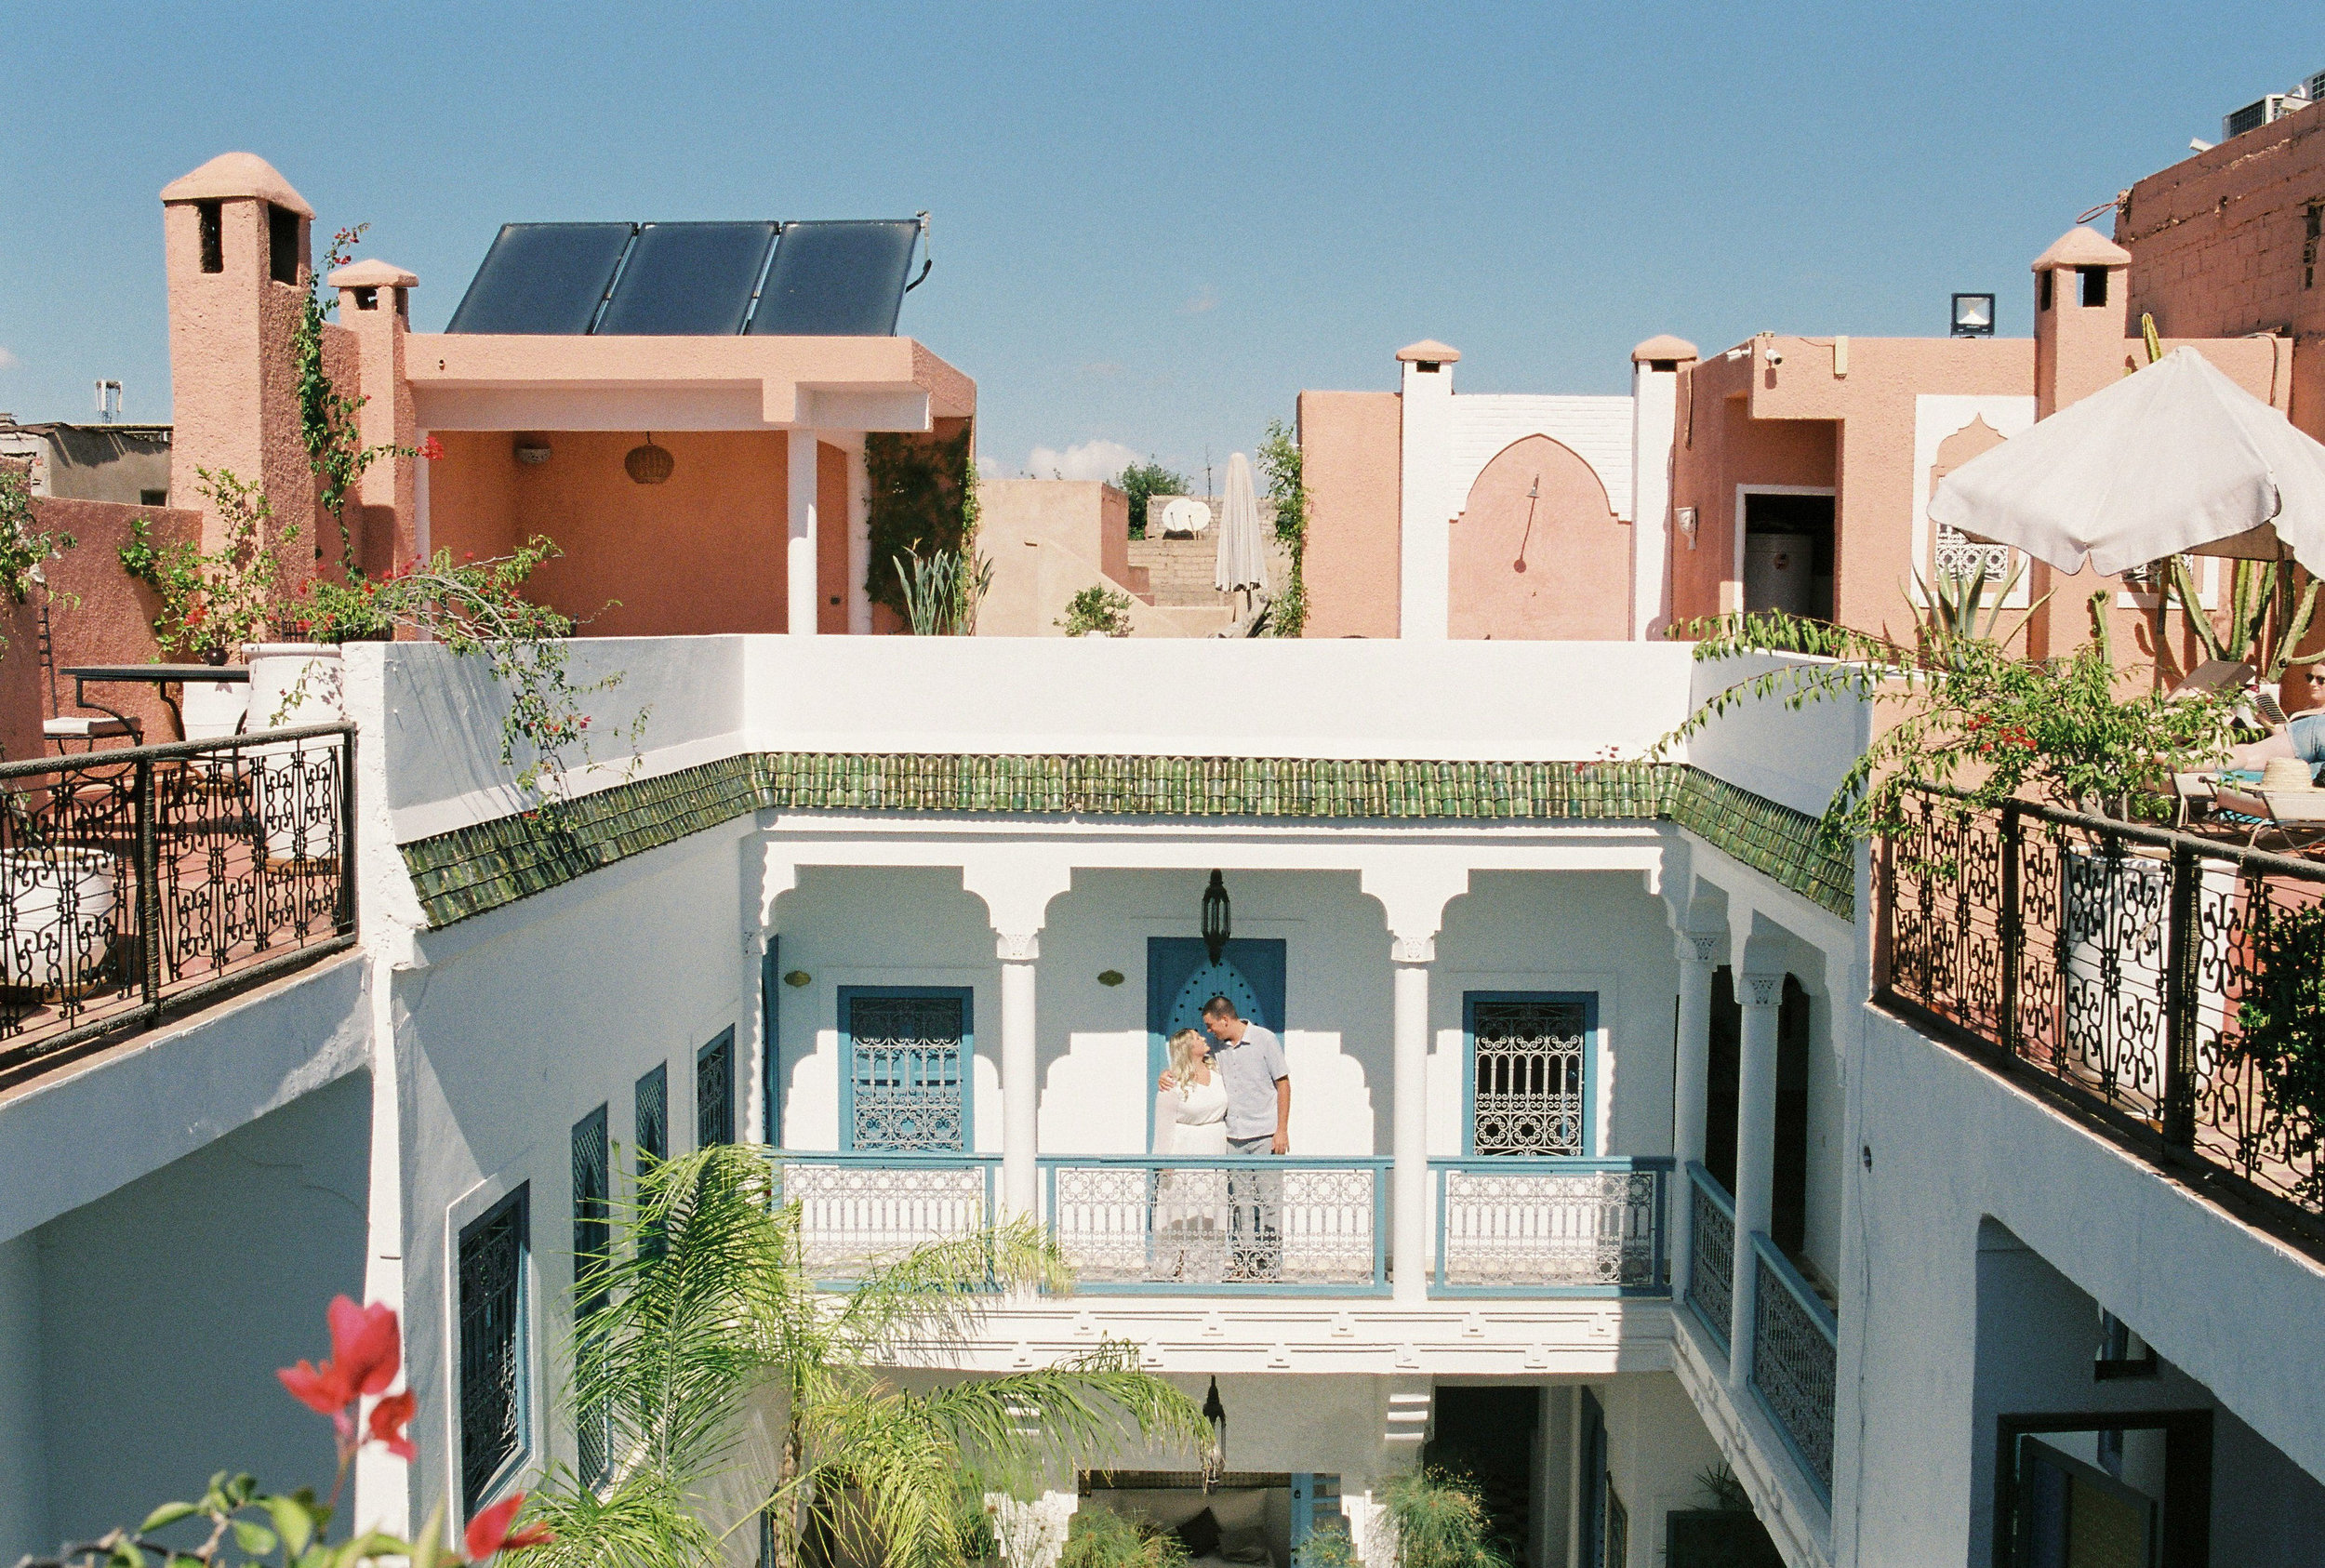 maria_rao_photography_ honeymoon_marrakesh-17.jpg